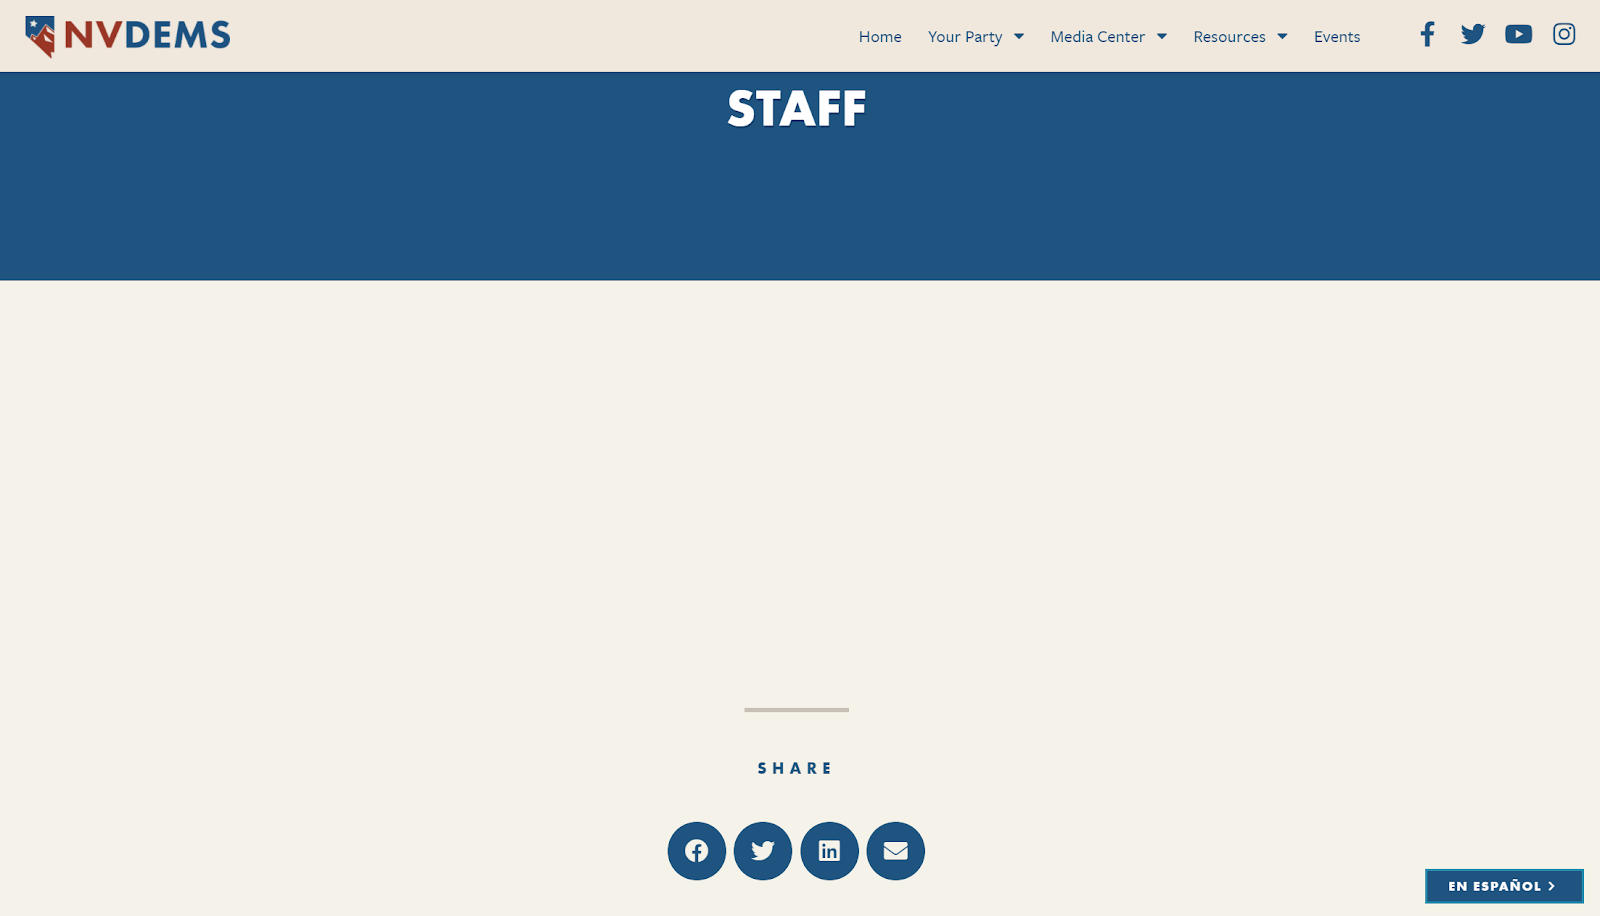 Screenshot of the Nevada Democratic Party webpage on March 11. Currently, the staff section is completely blank because all members resigned after a Democratic Socialists of America backed coalition swept all seats in a recent election.